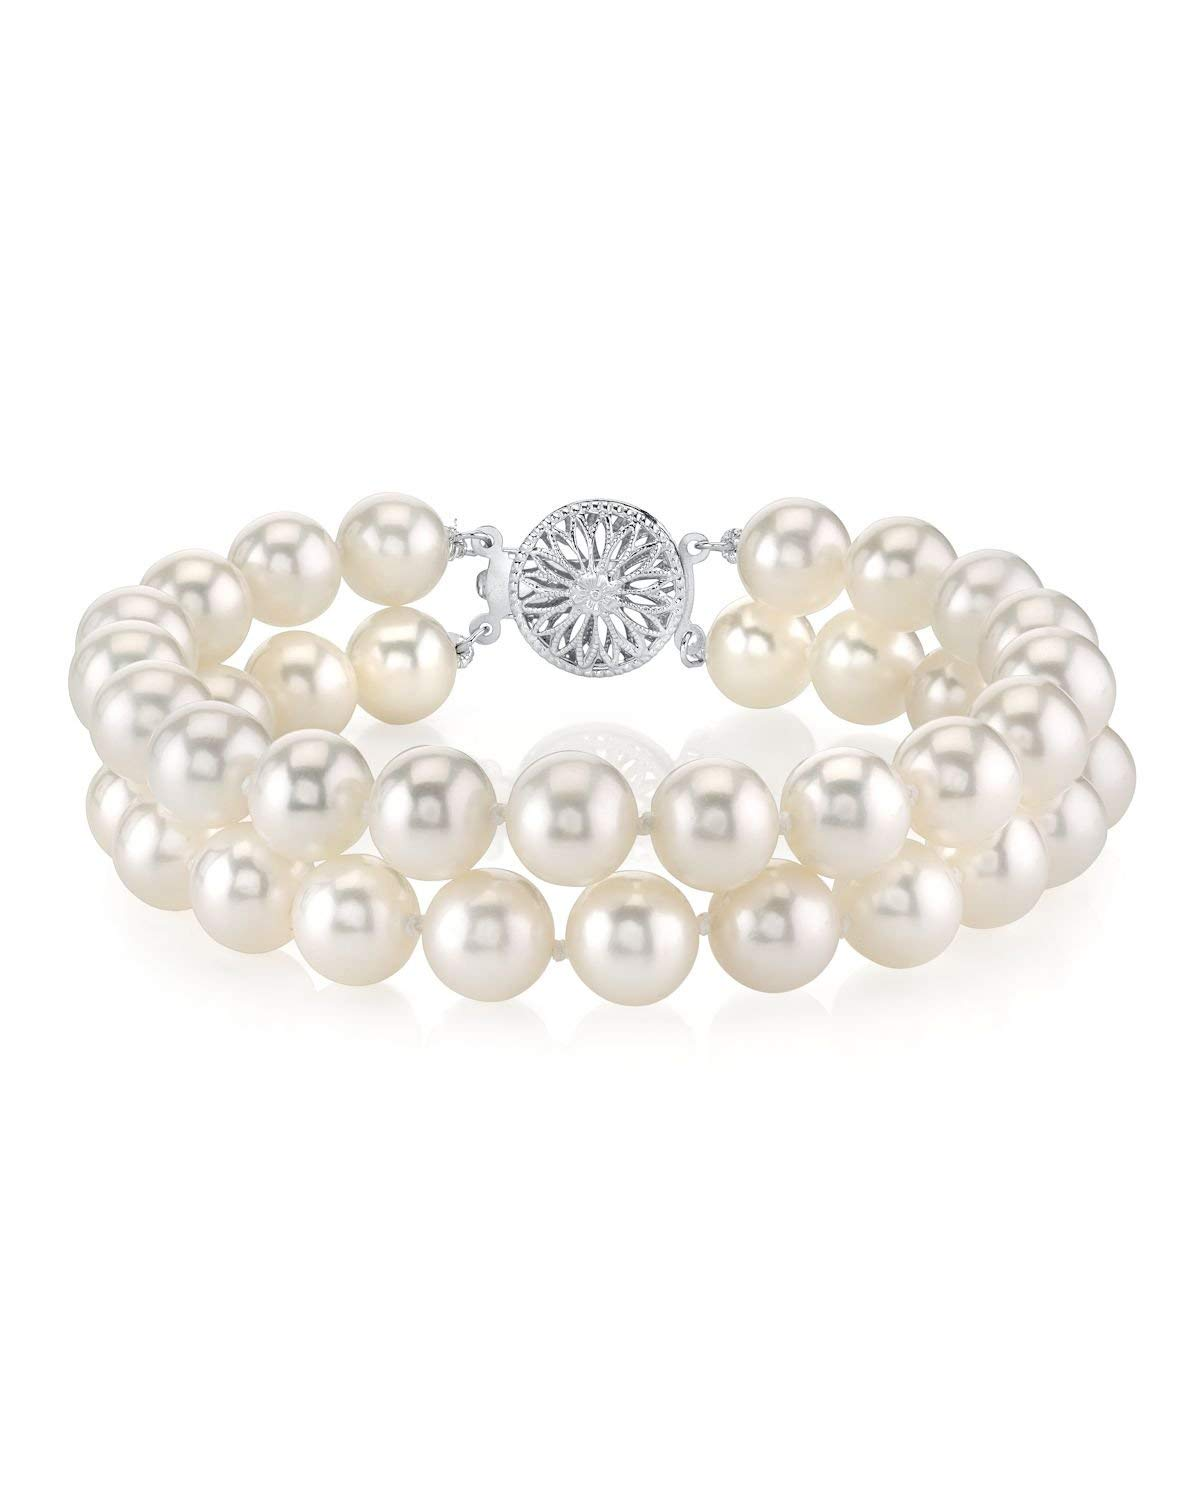 THE PEARL SOURCE Sterling Silver 8-9mm AAA Quality Round White Freshwater Cultured Pearl Double Strand Bracelet for Women